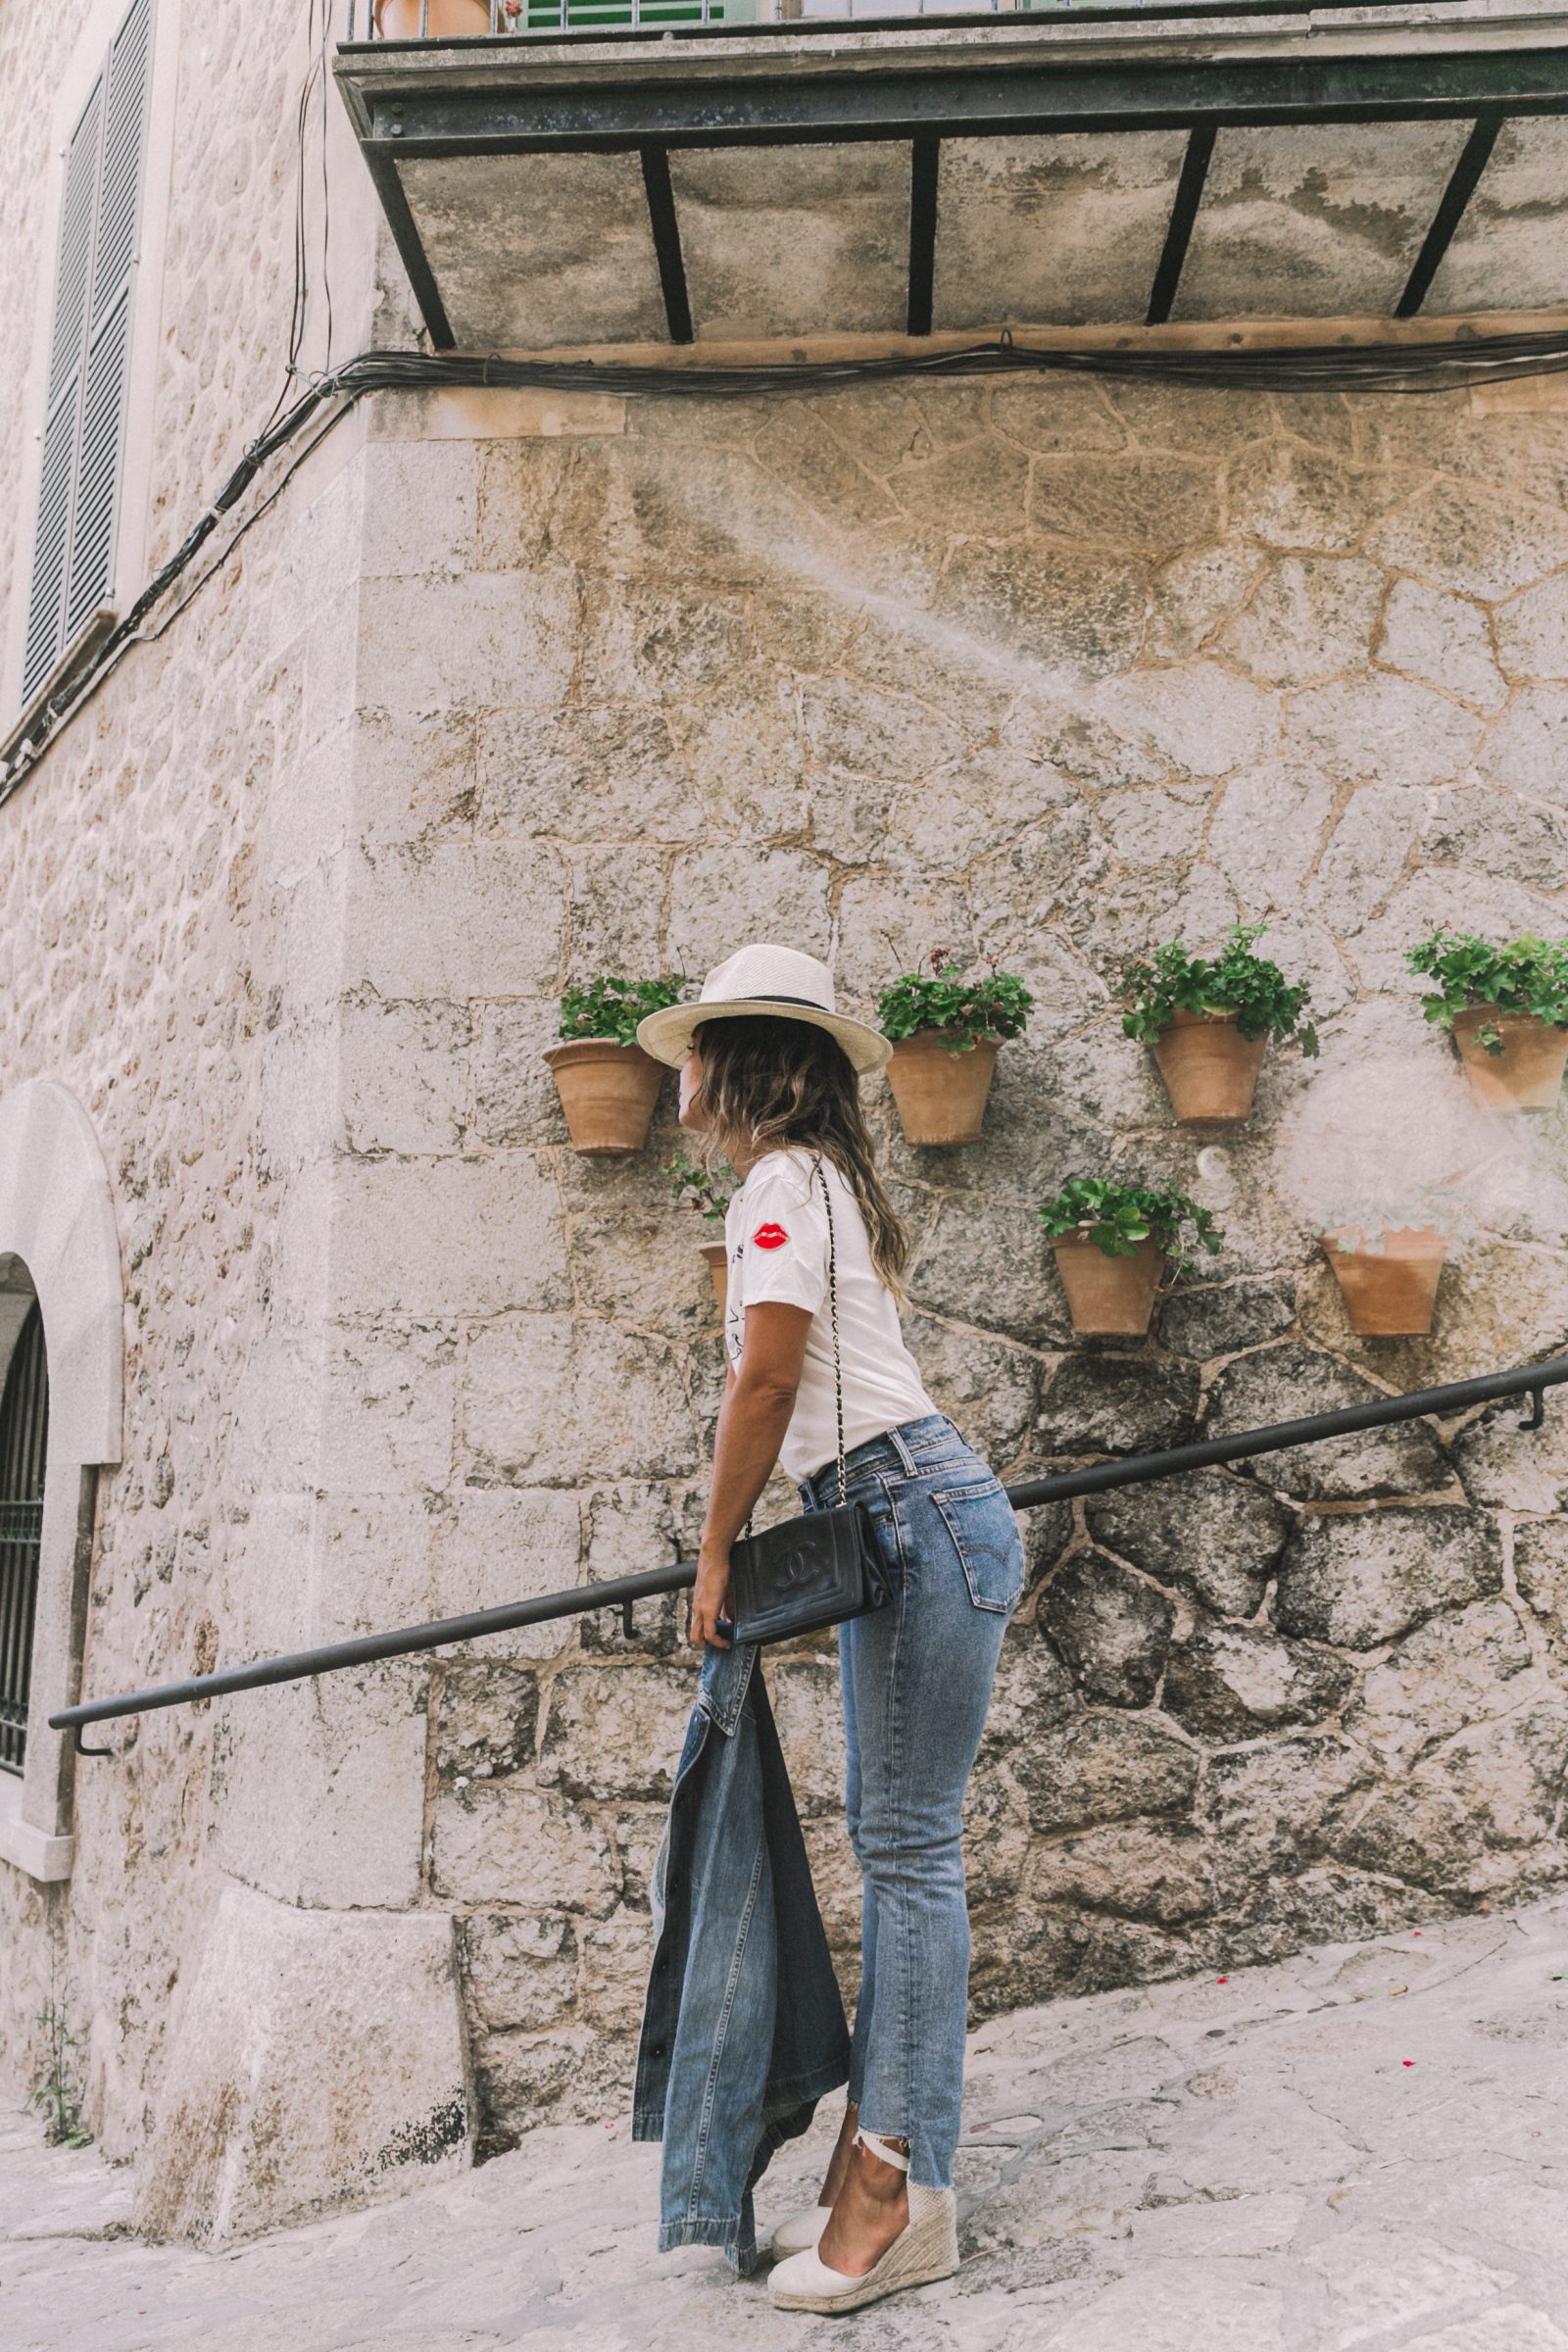 Live_in_Levis-Denim-Who_What_Wear-Levis-Denim-Double_Denim-Menorca-Street_Style-Collage_Vintage-64